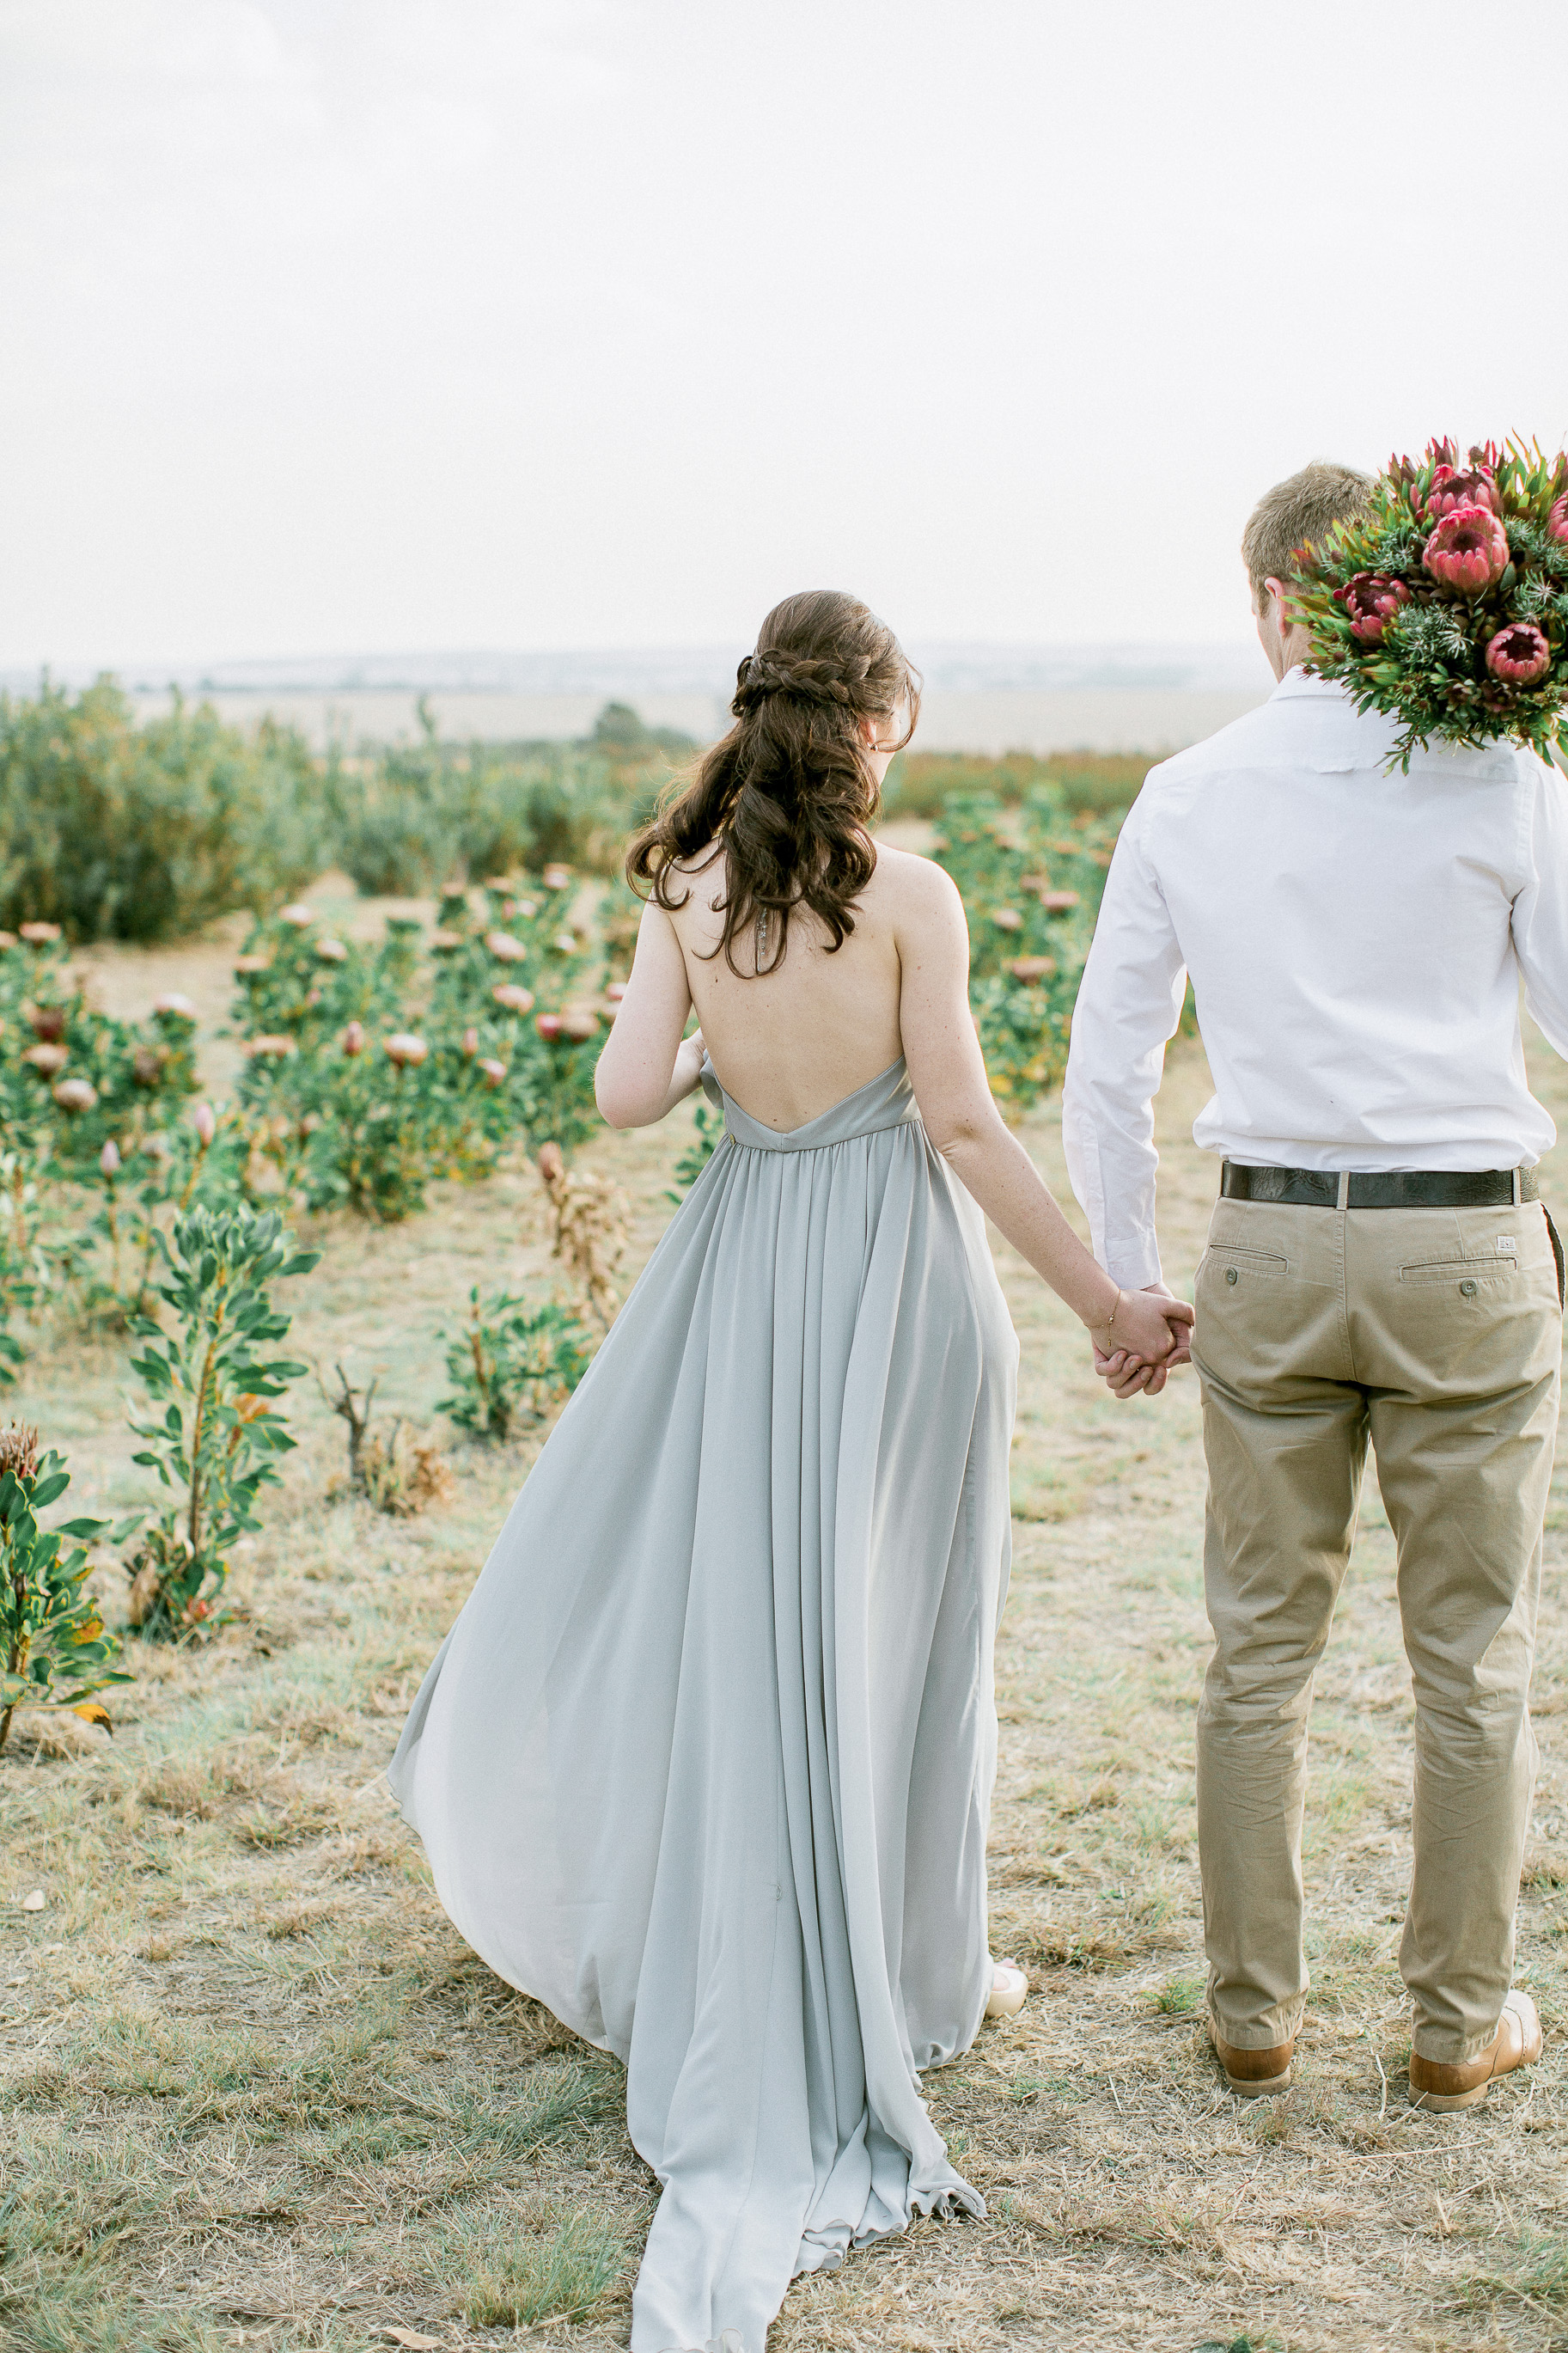 South africa wedding photographer clareece smit photography59.jpg